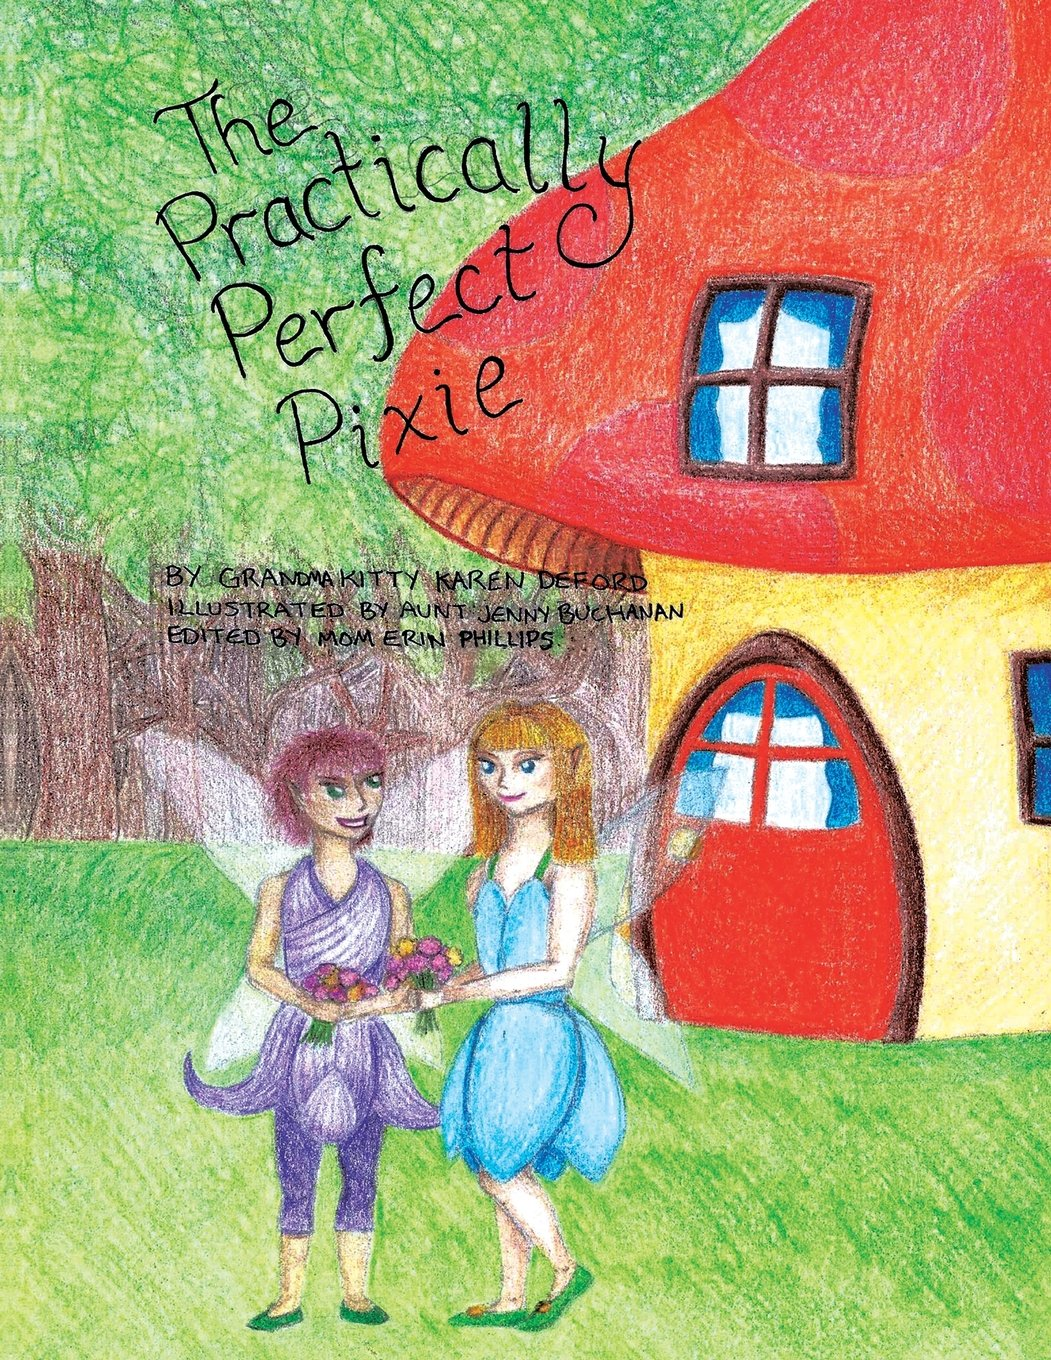 Read Online The Practically Perfect Pixie PDF